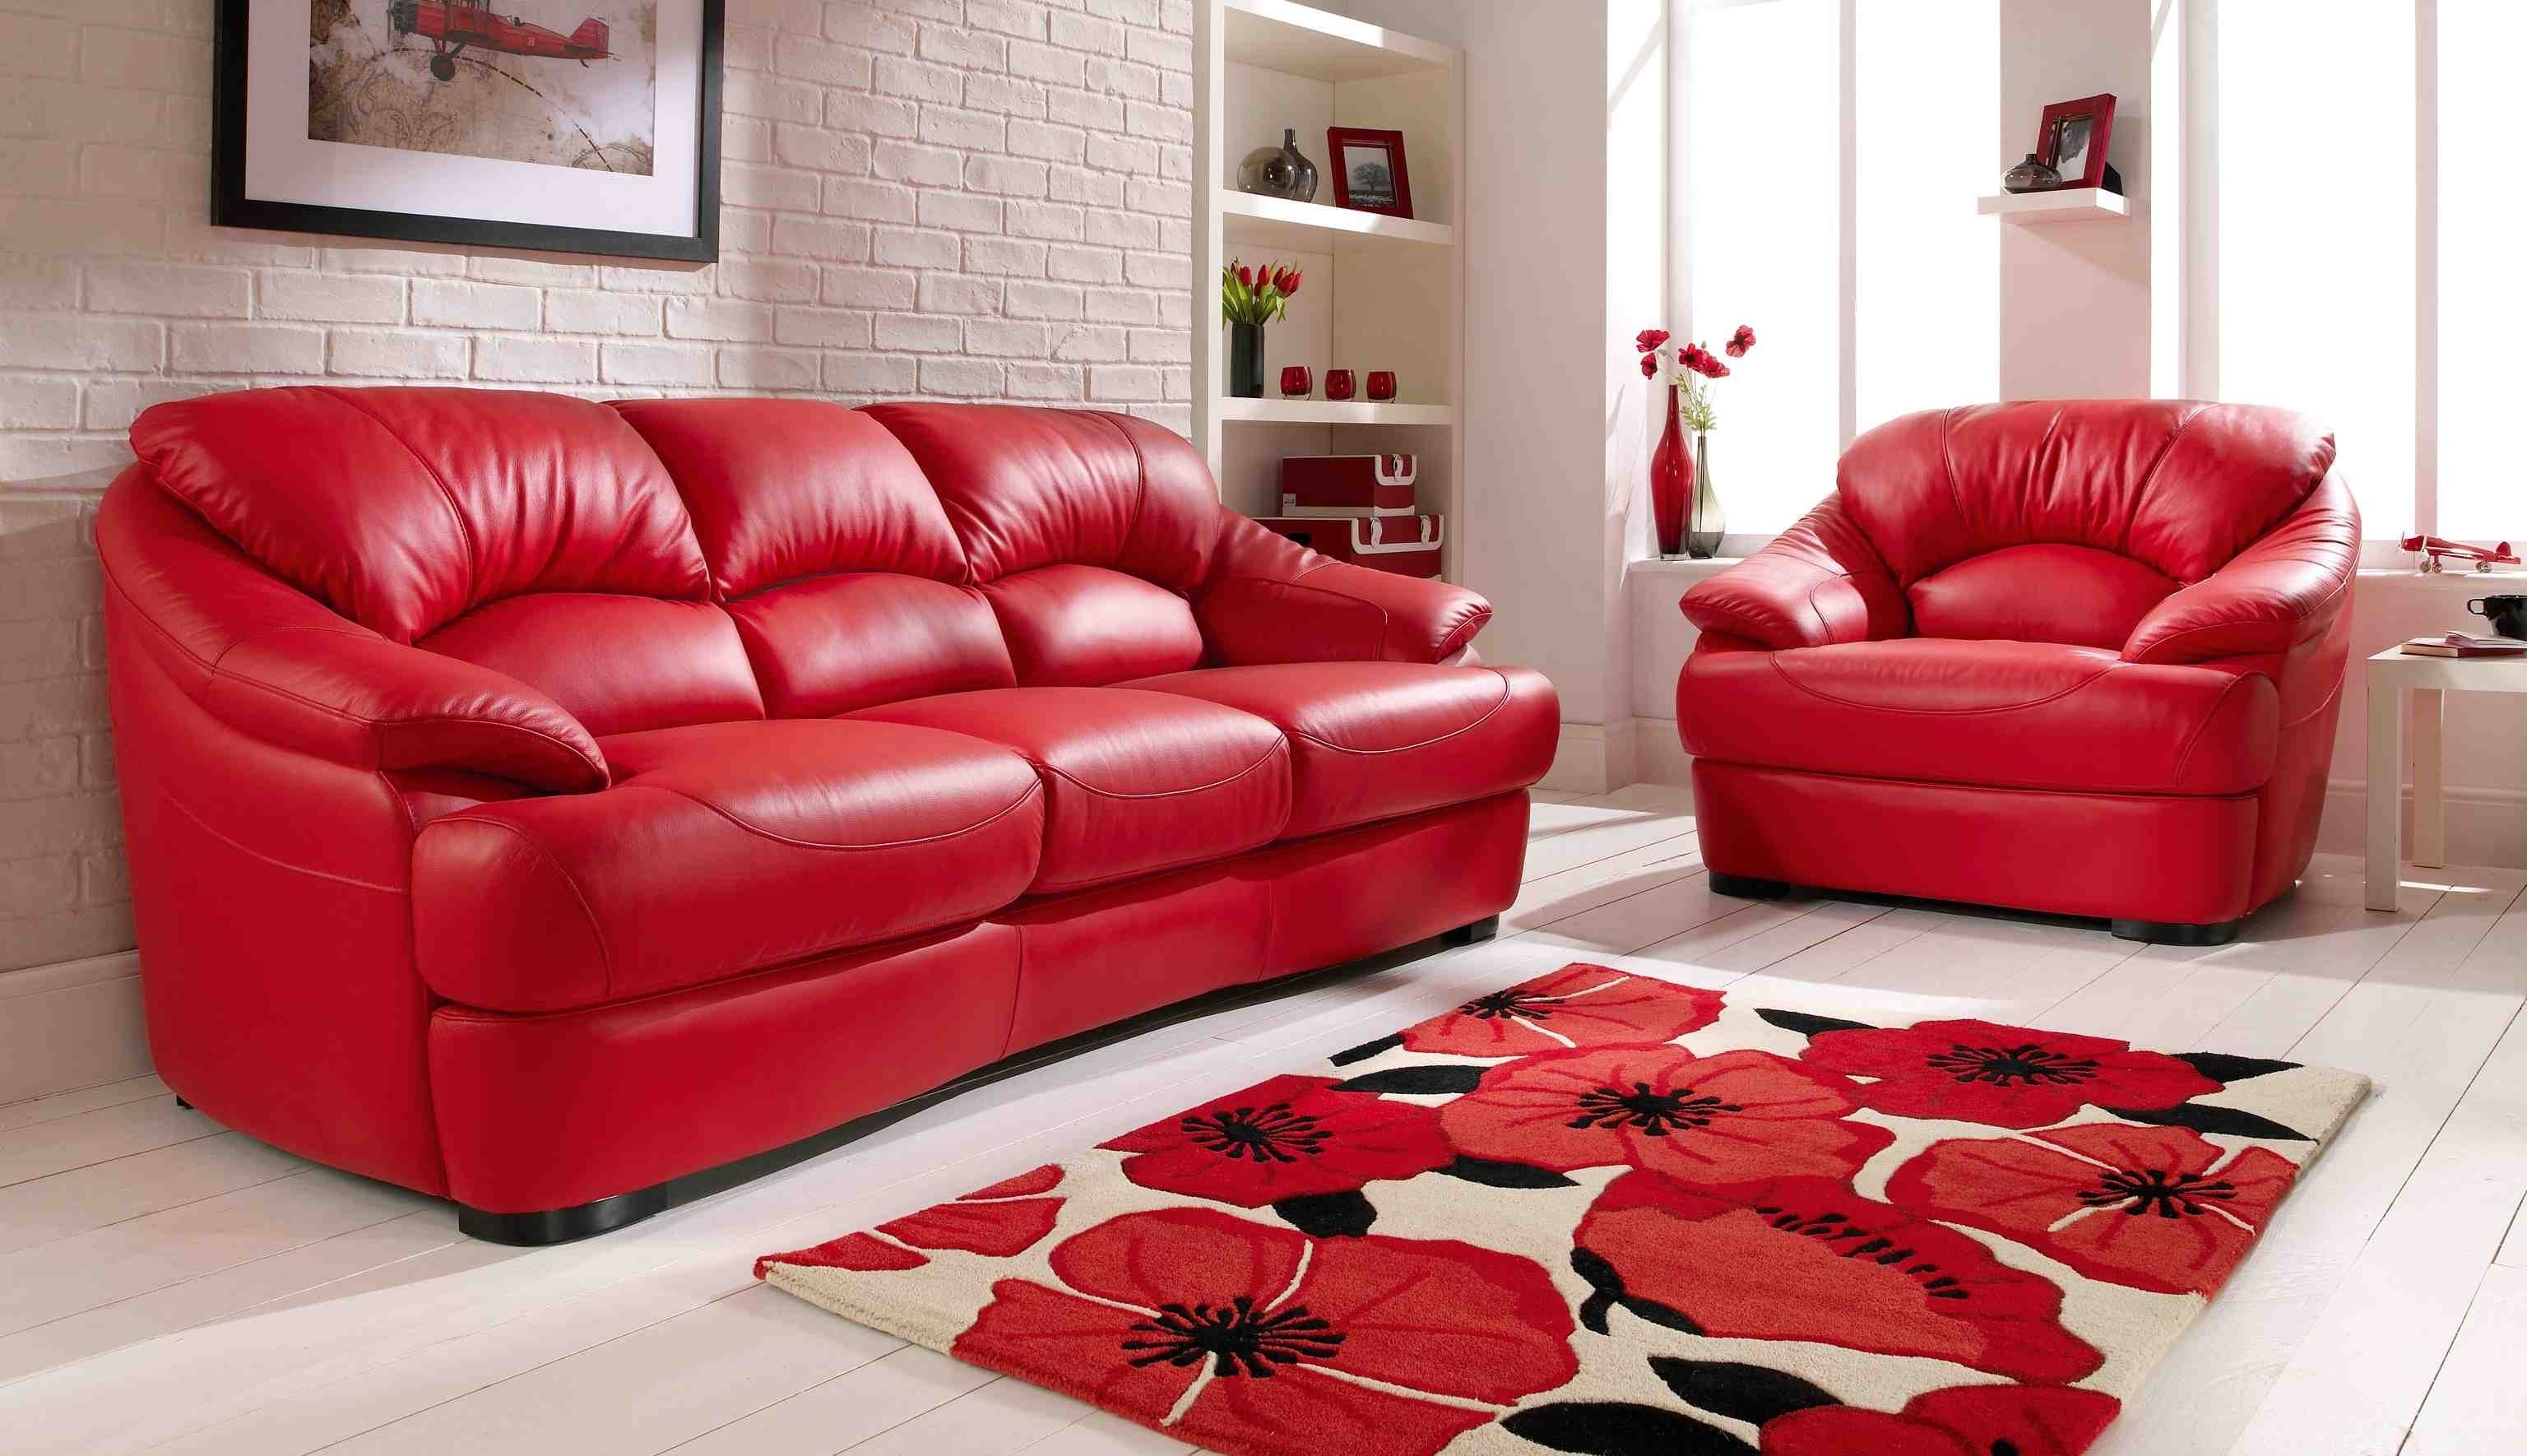 Most Recent Red Leather Sofa Living Room Ideas Home Design Ideas Pertaining To Pertaining To Red Leather Couches (View 6 of 20)